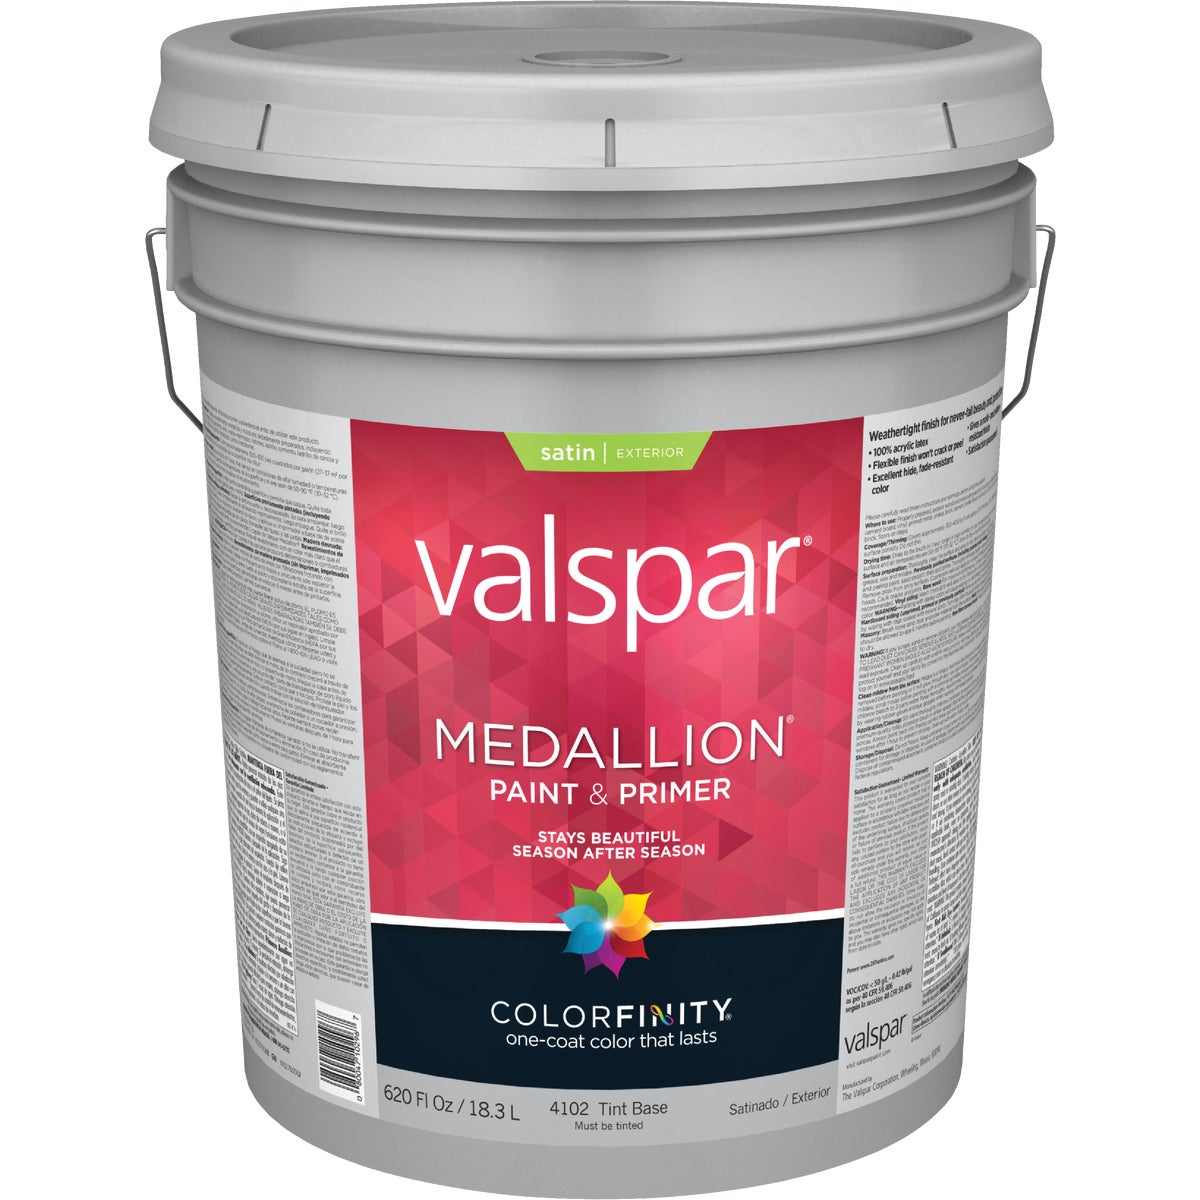 EXT SAT TINT BS PAINT - 027.0004102.008 by Valspar Corp